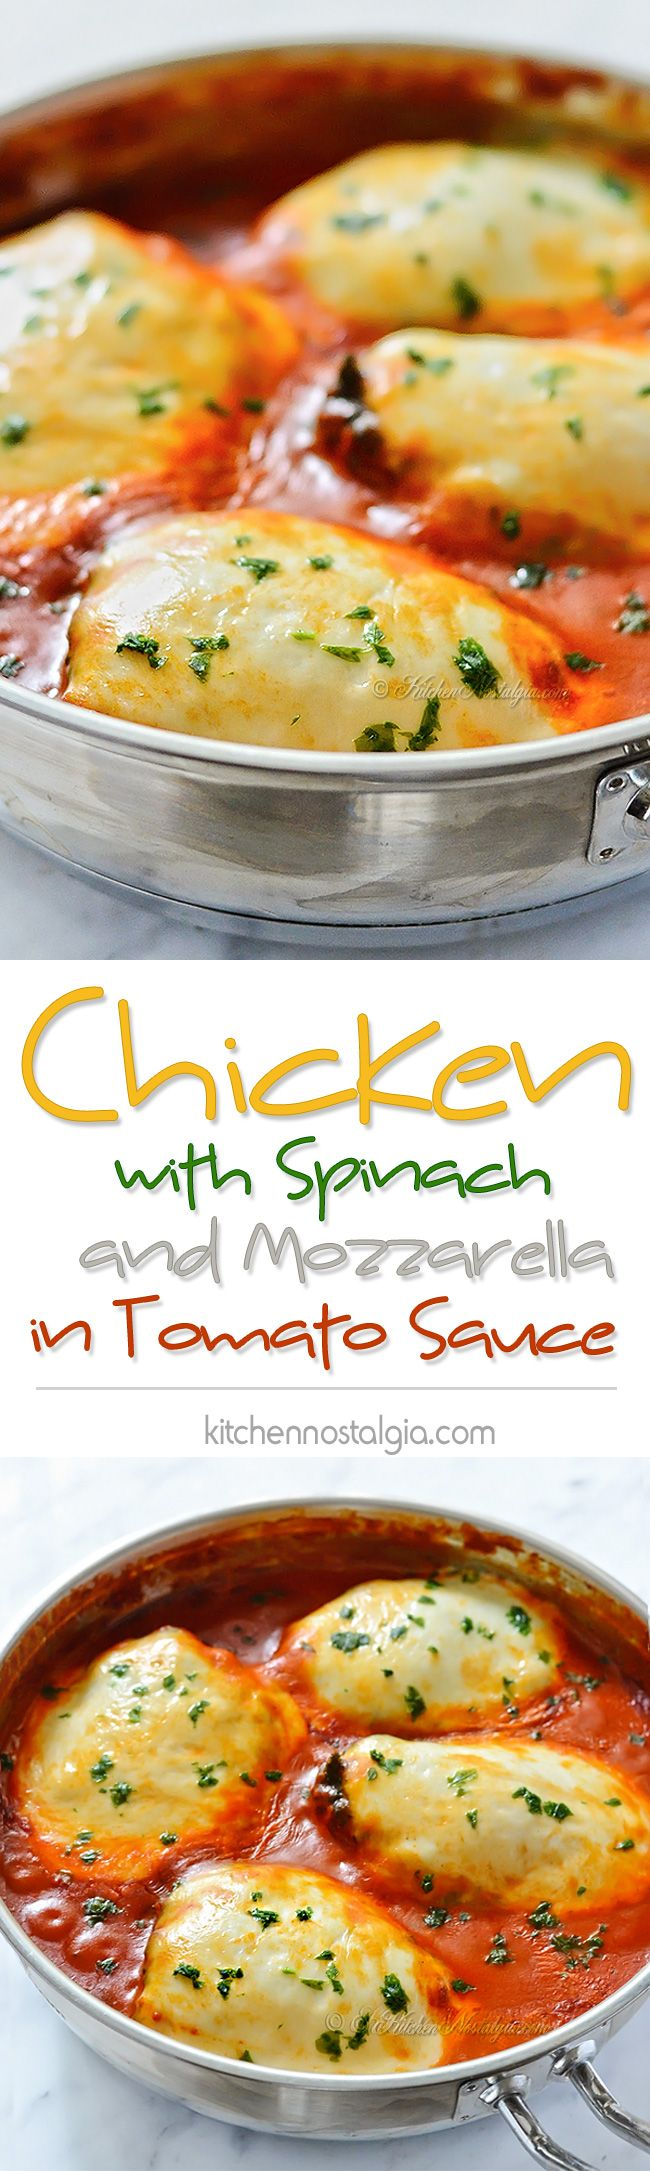 Chicken with Spinach and Mozzarella in Tomato Sauce, aka Chicken Florentine - Italians really know how to cook! - kitchennostalgia.com